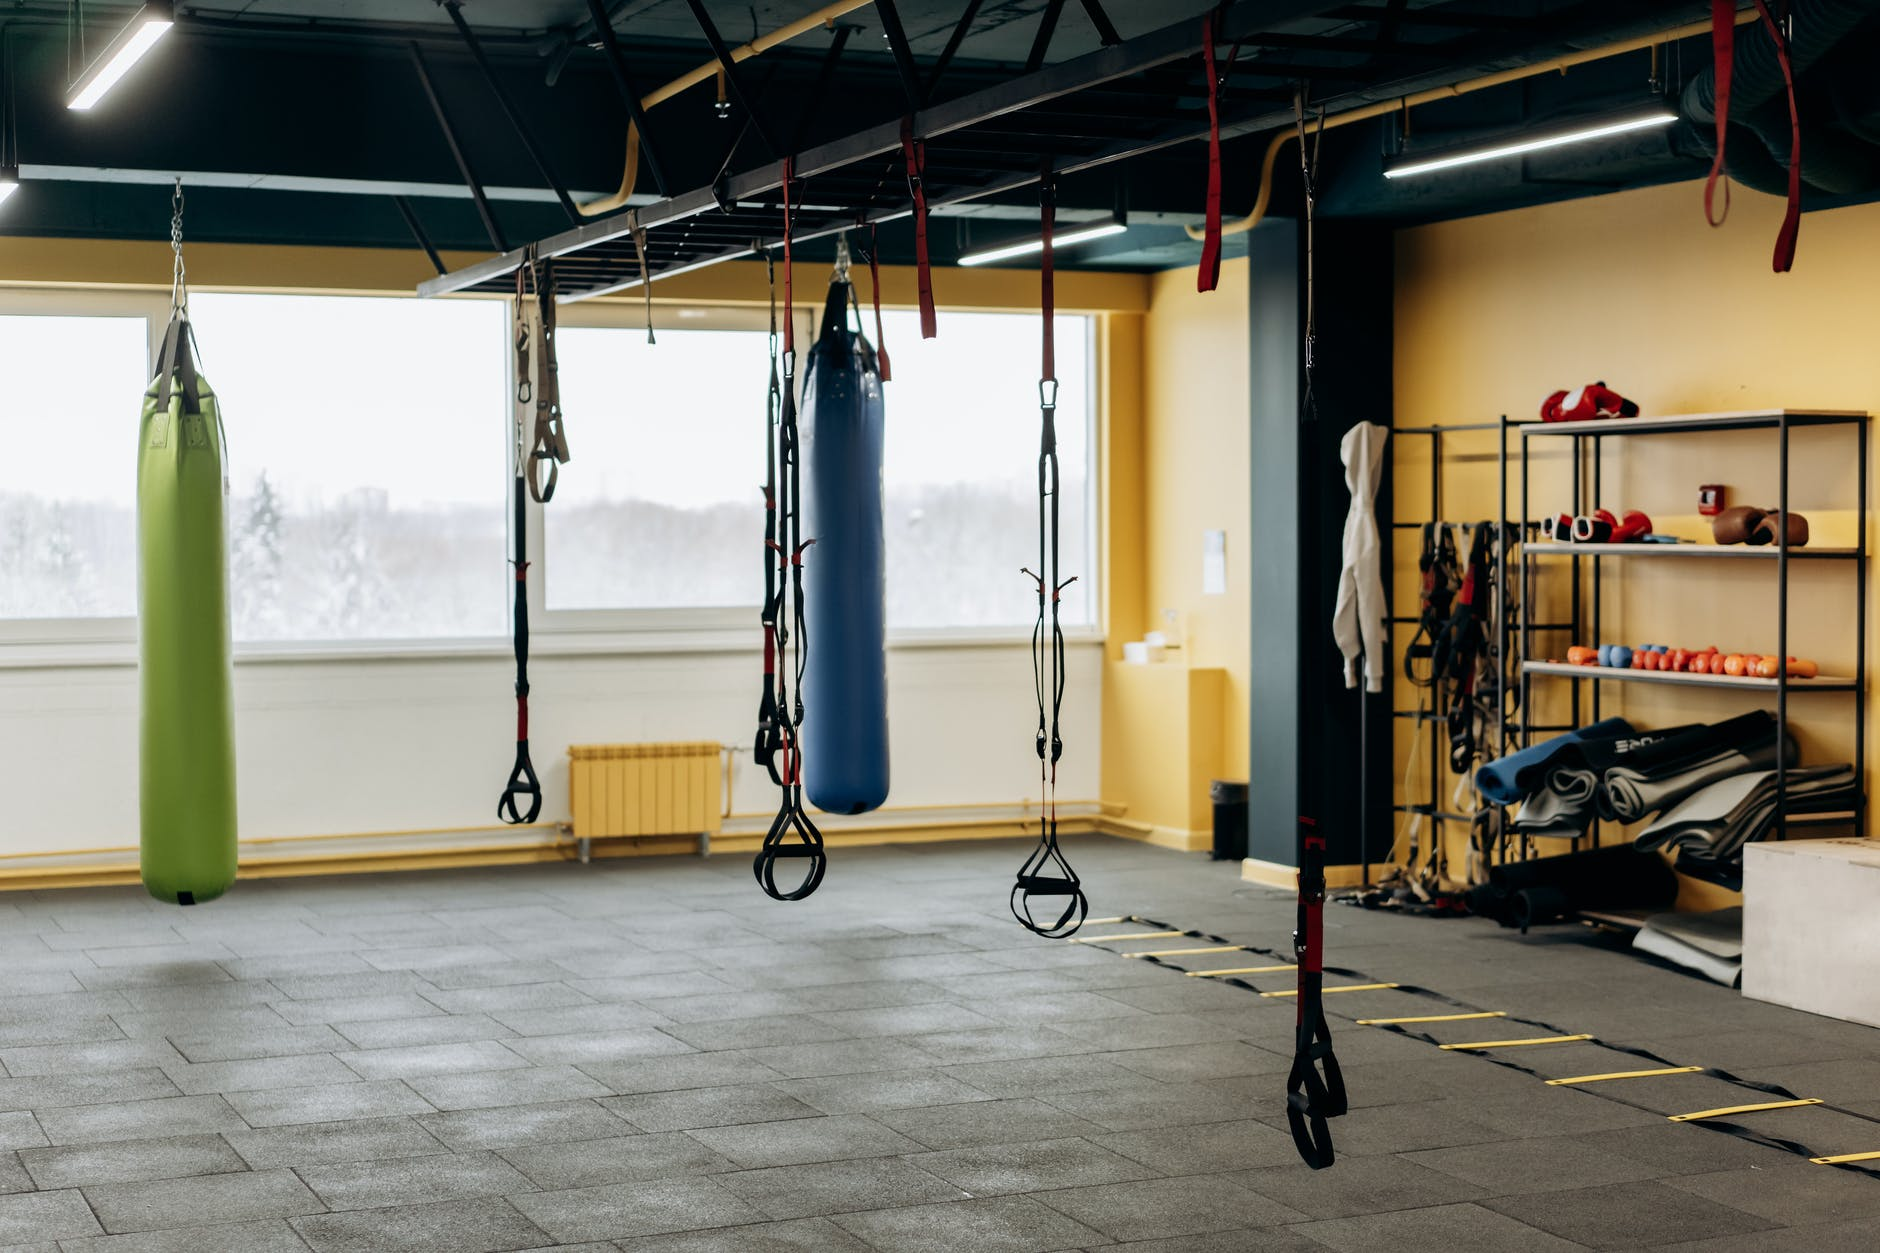 a spacious gym with tools and equipments